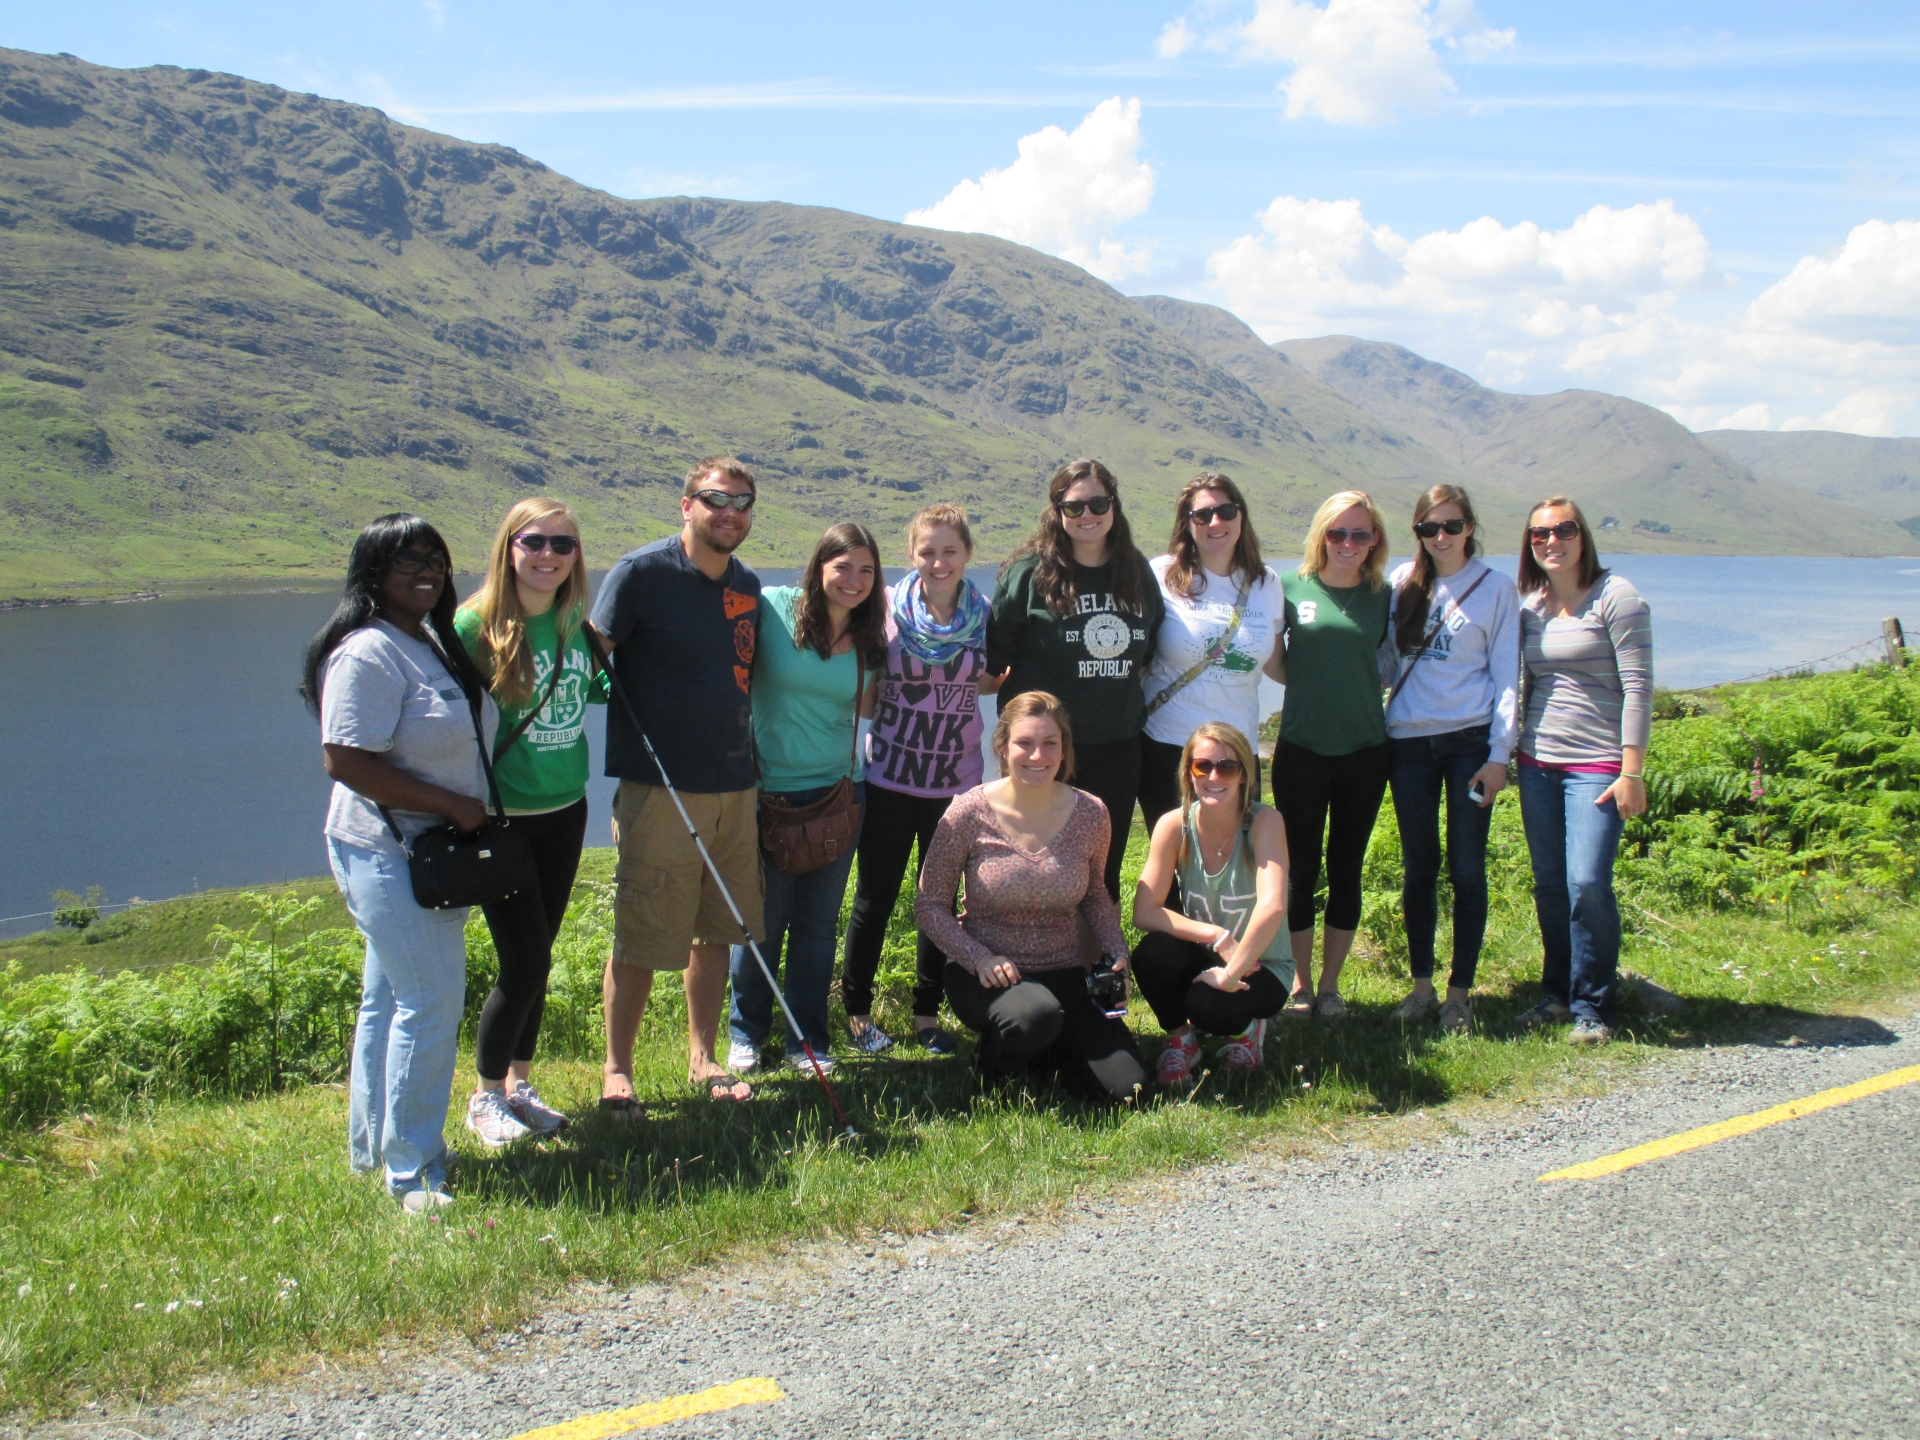 Study abroad students standing roadside in front of a lake and green mountain range